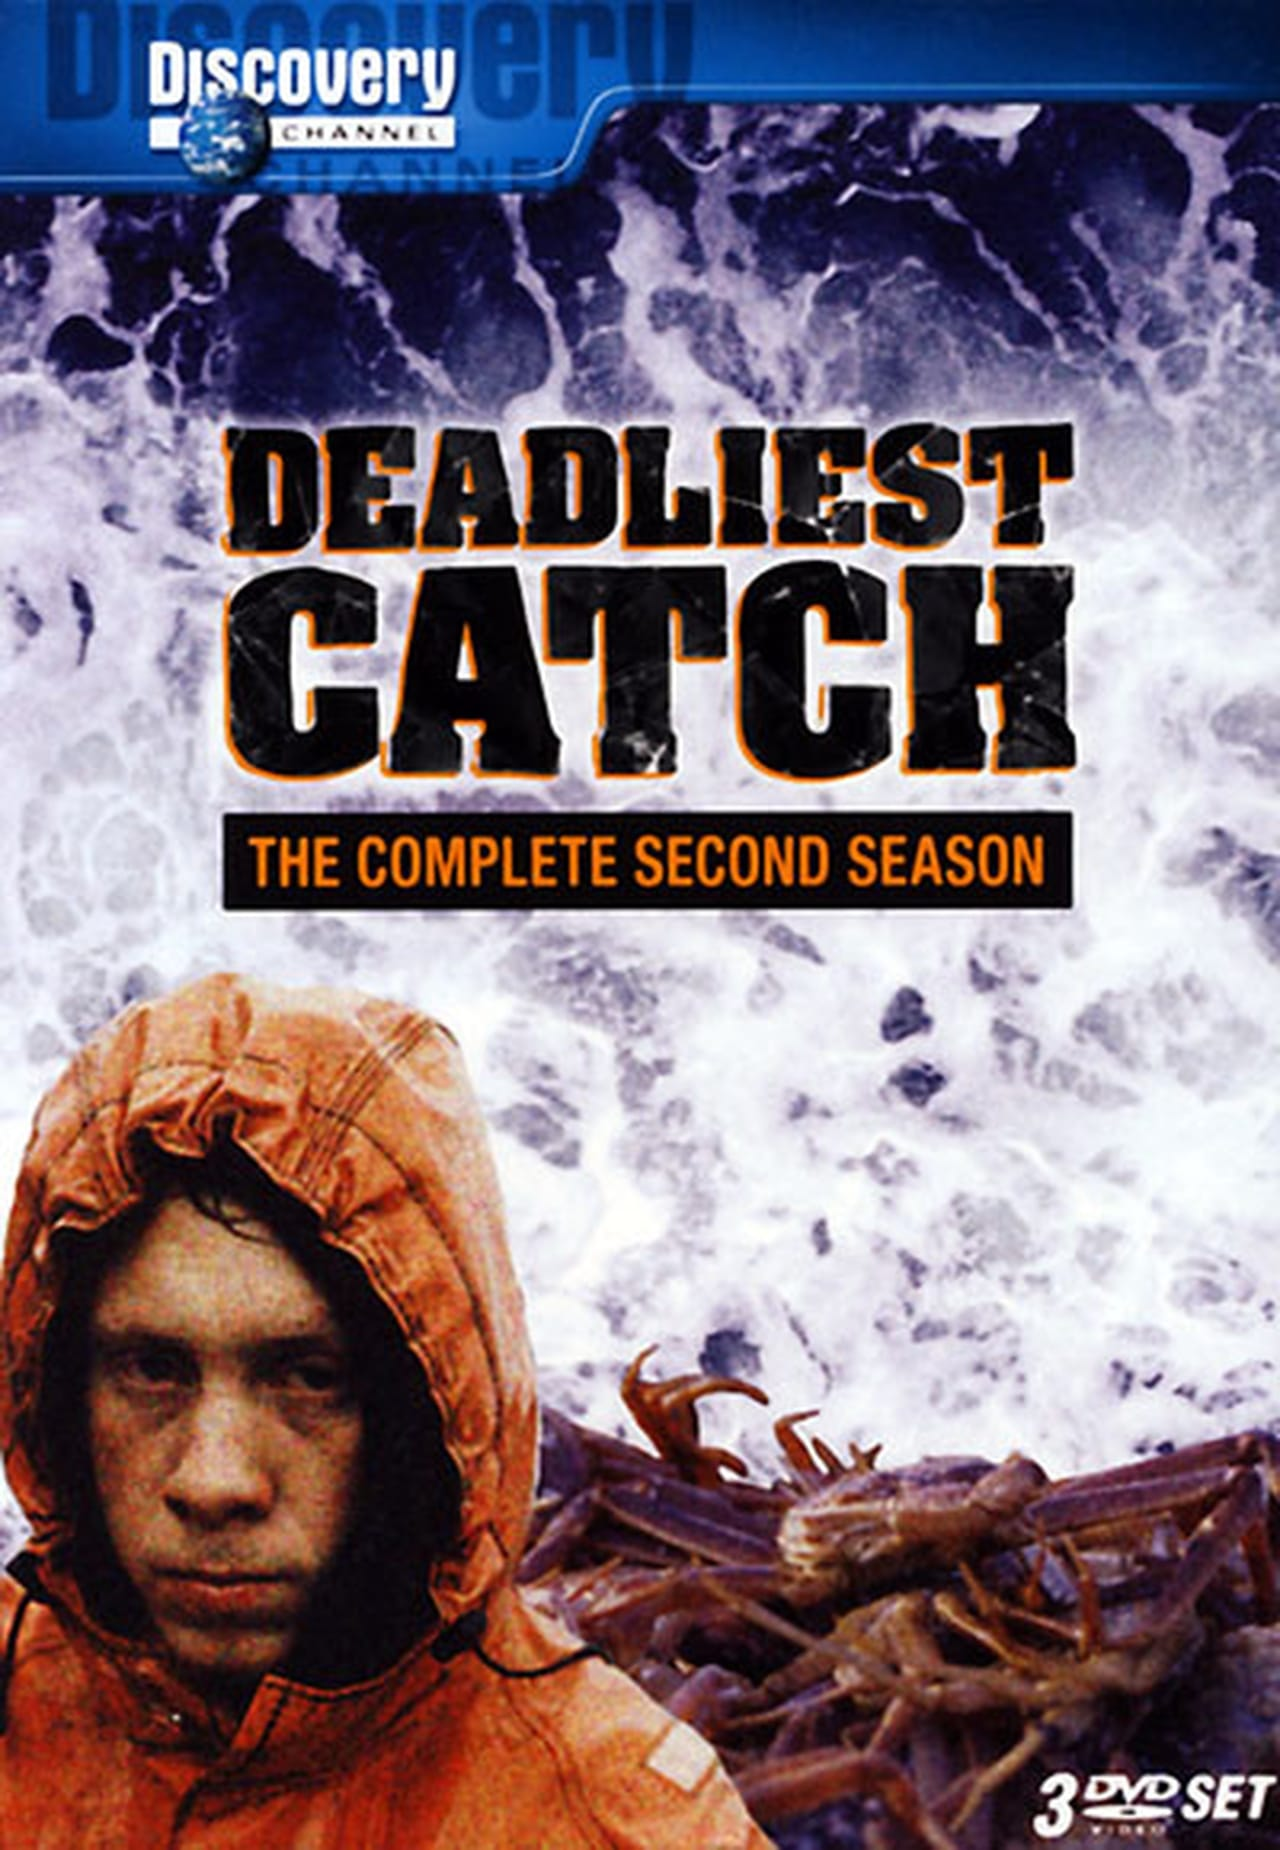 Putlocker Deadliest Catch Season 2 (2006)